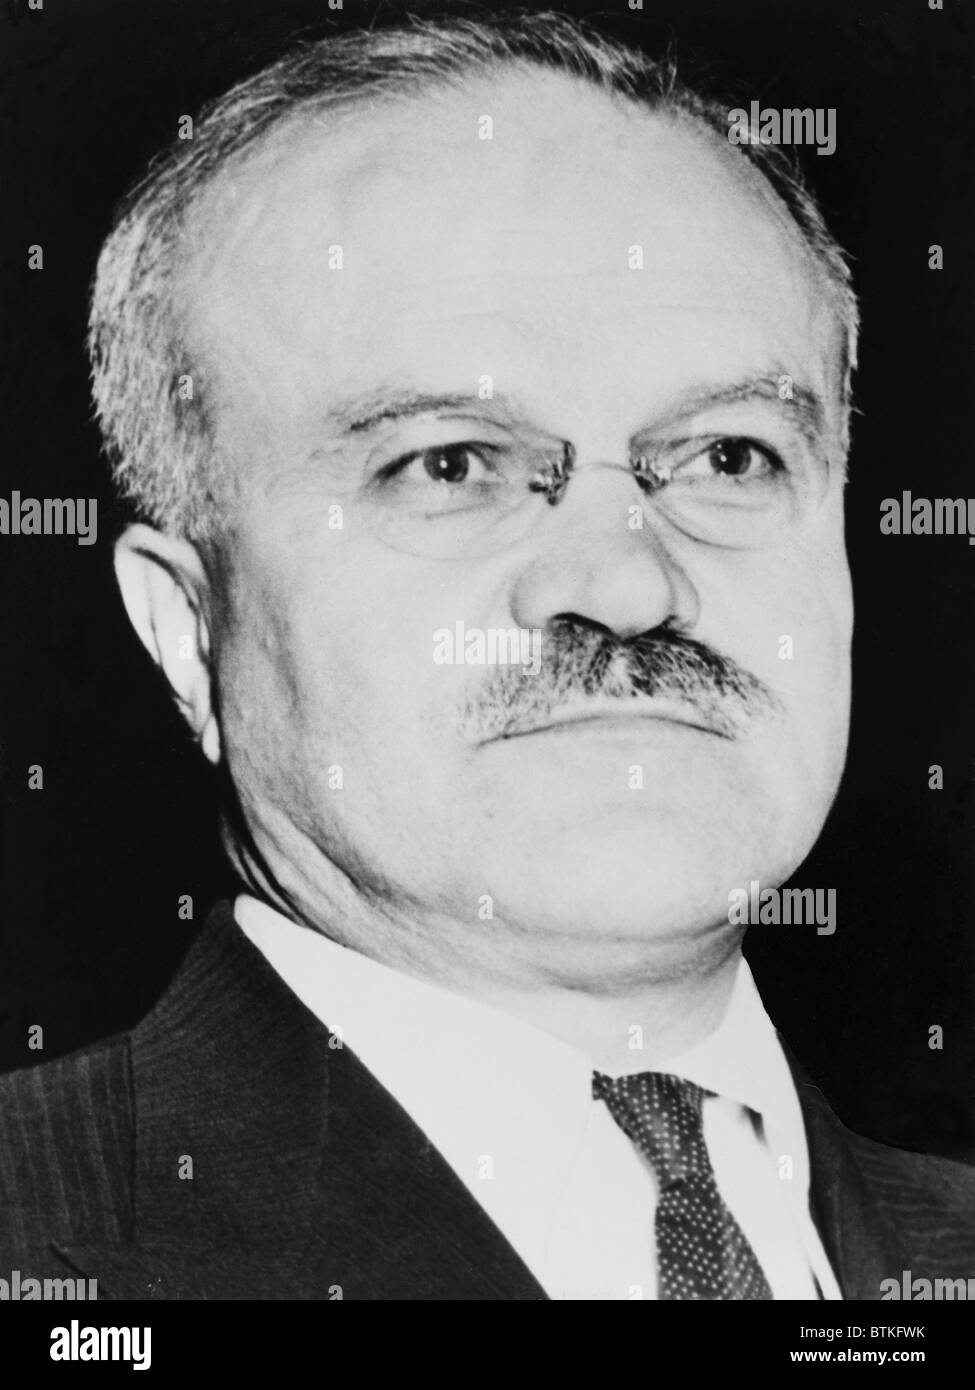 Russian Foreign Minister, Vyacheslav Molotov (1890-1986), ca. 1955, before his conflicts with Nikita Khrushchev - Stock Image